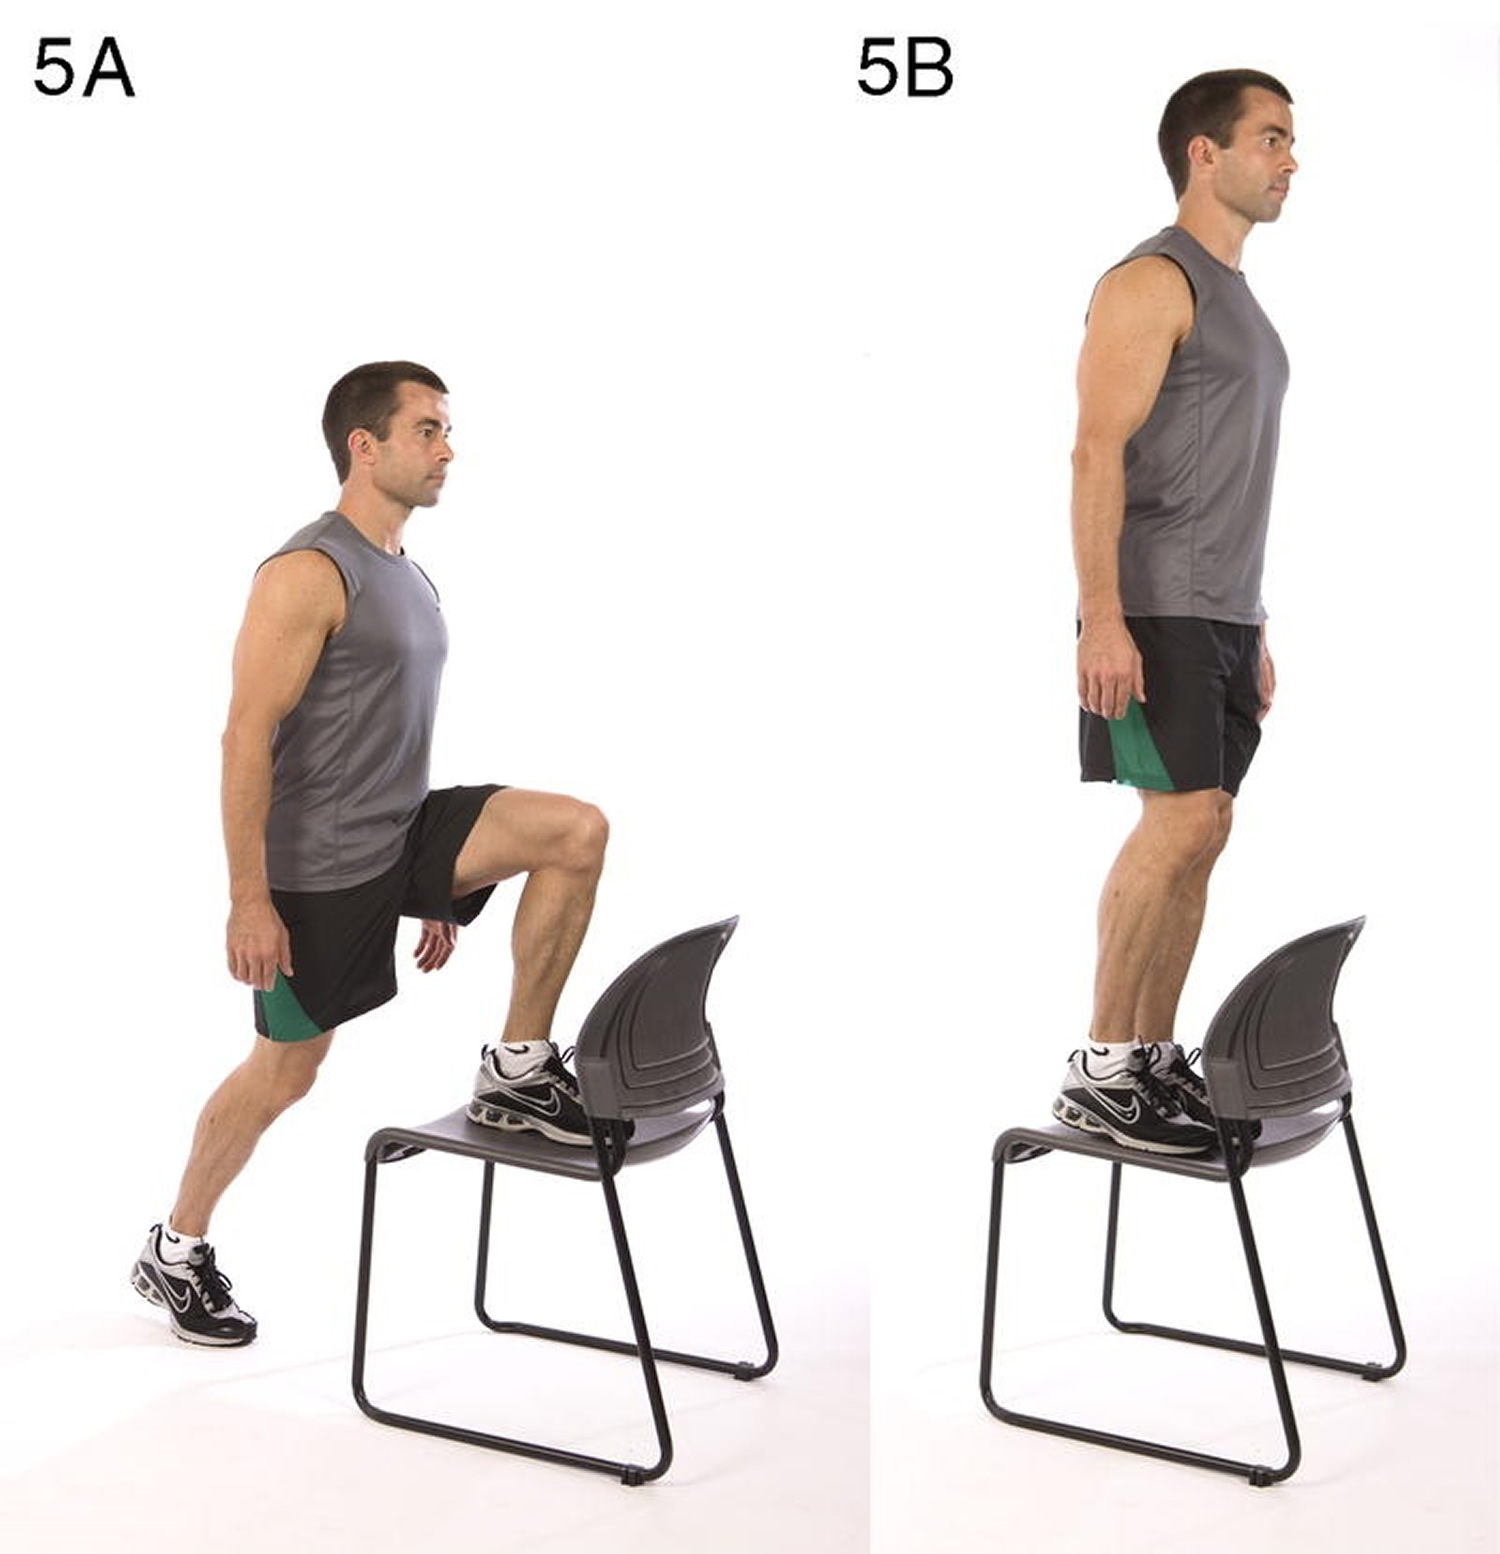 Step-up onto chair Total body